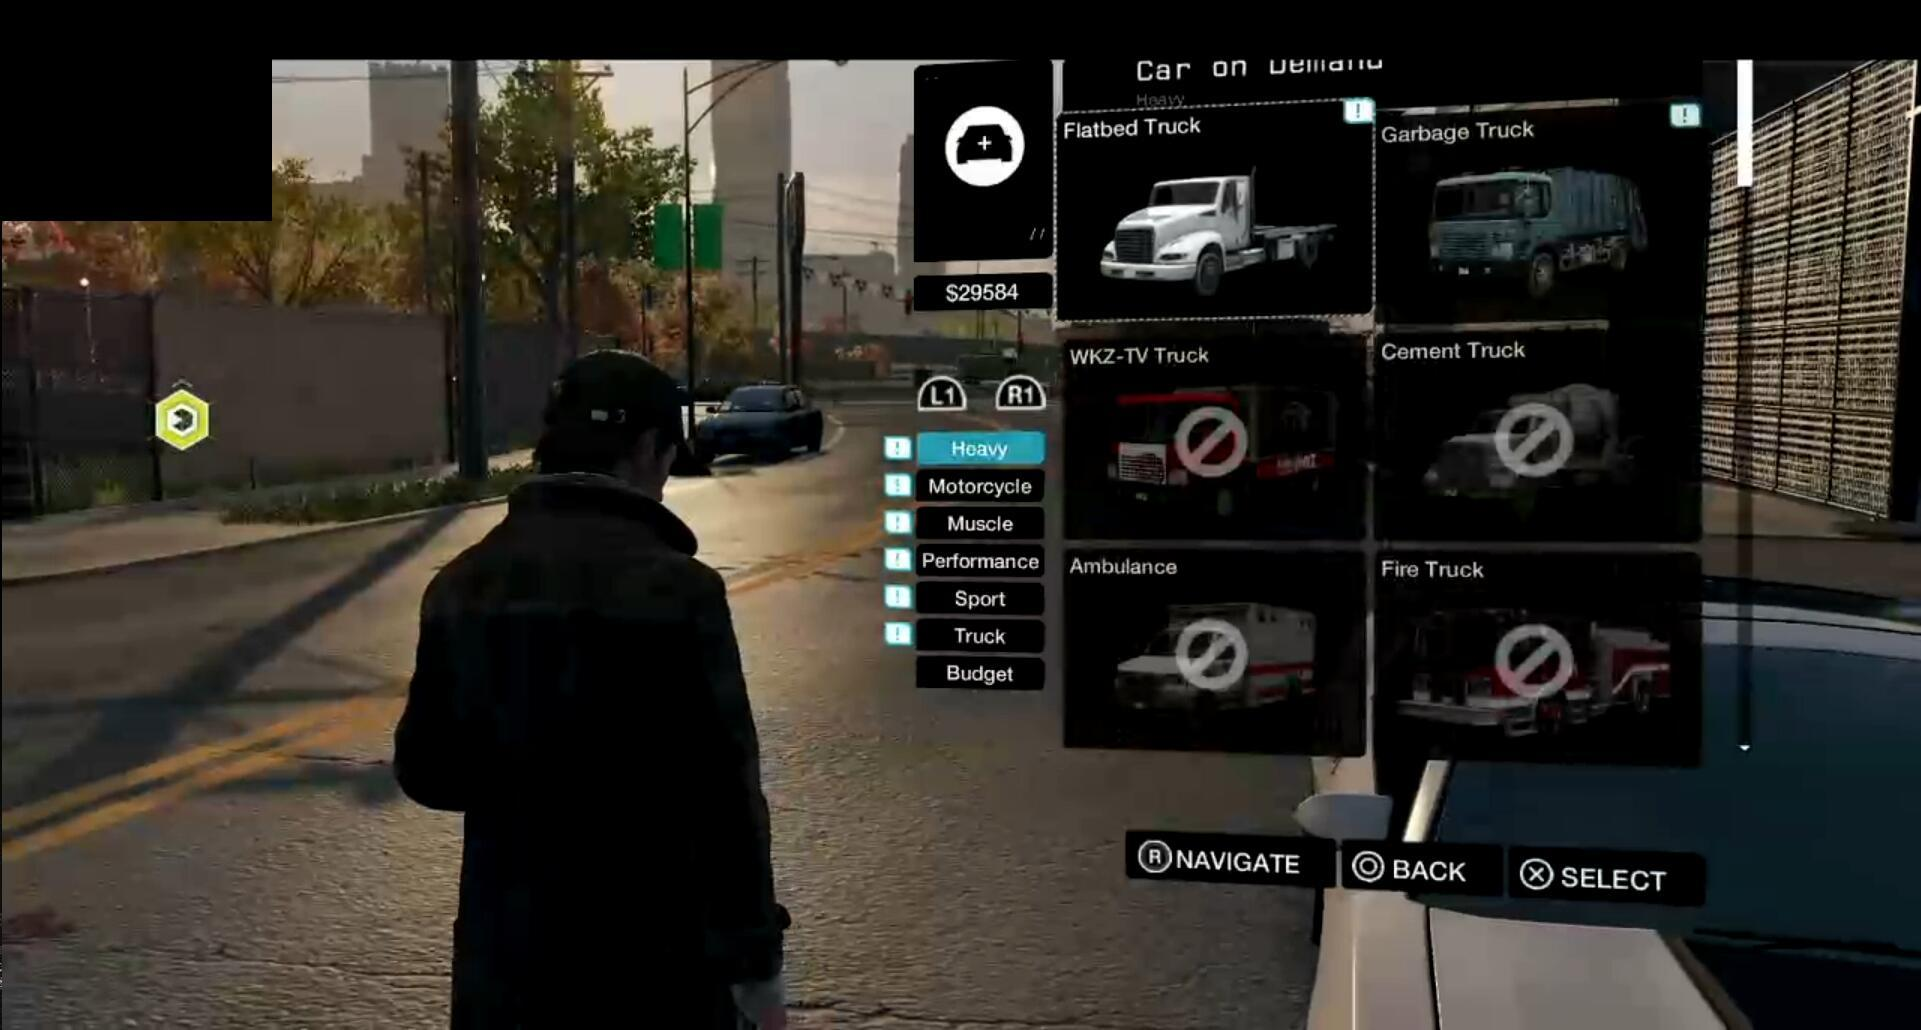 HUD - Dicas Incríveis da Google Watch-dogs-car-on-demand-in-game-screen-7